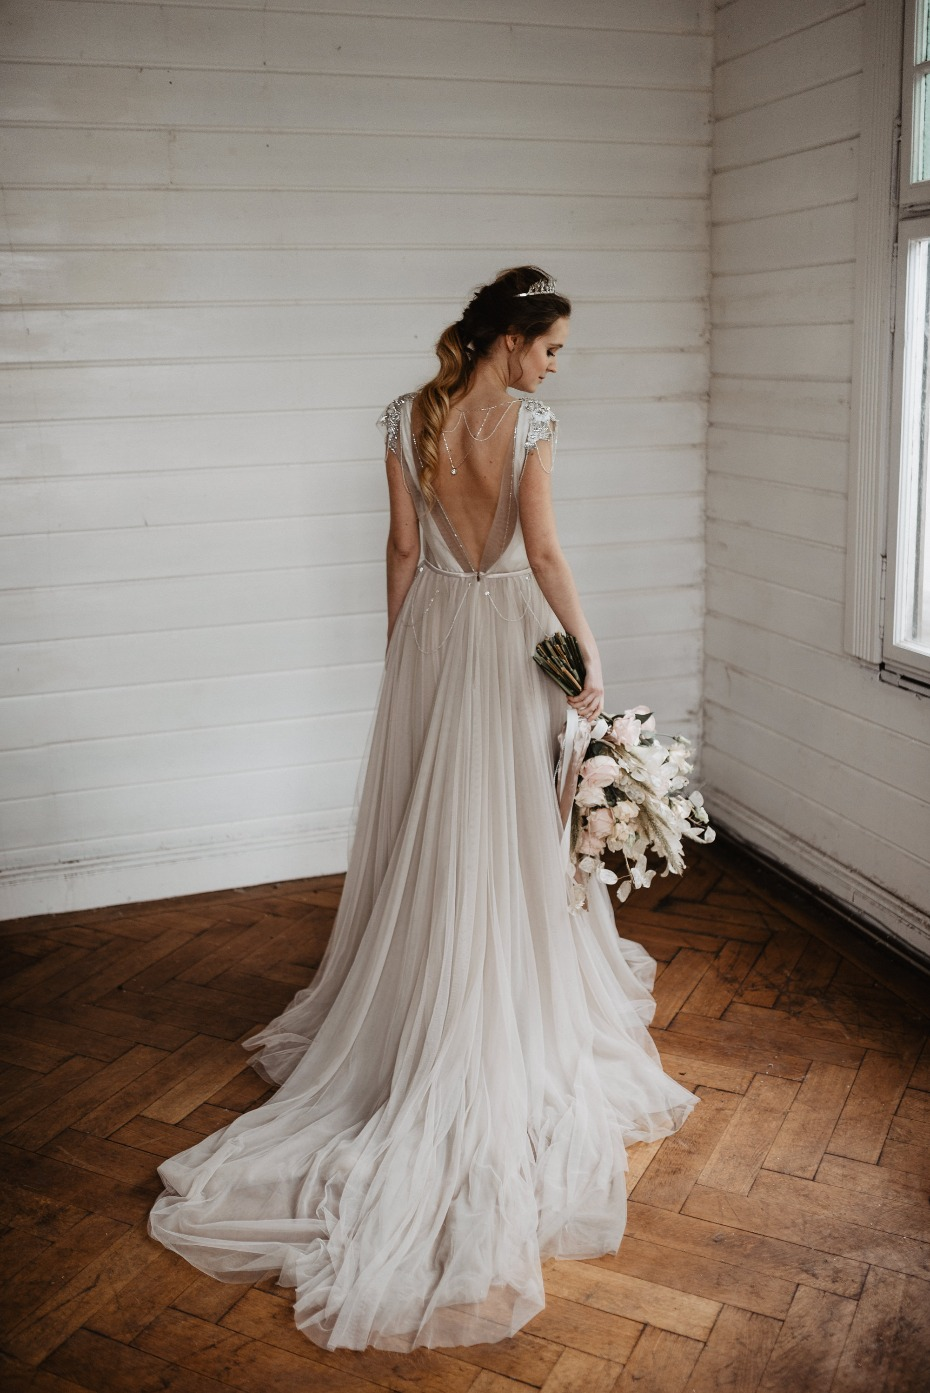 Soft smokey silver wedding dress with tulle train